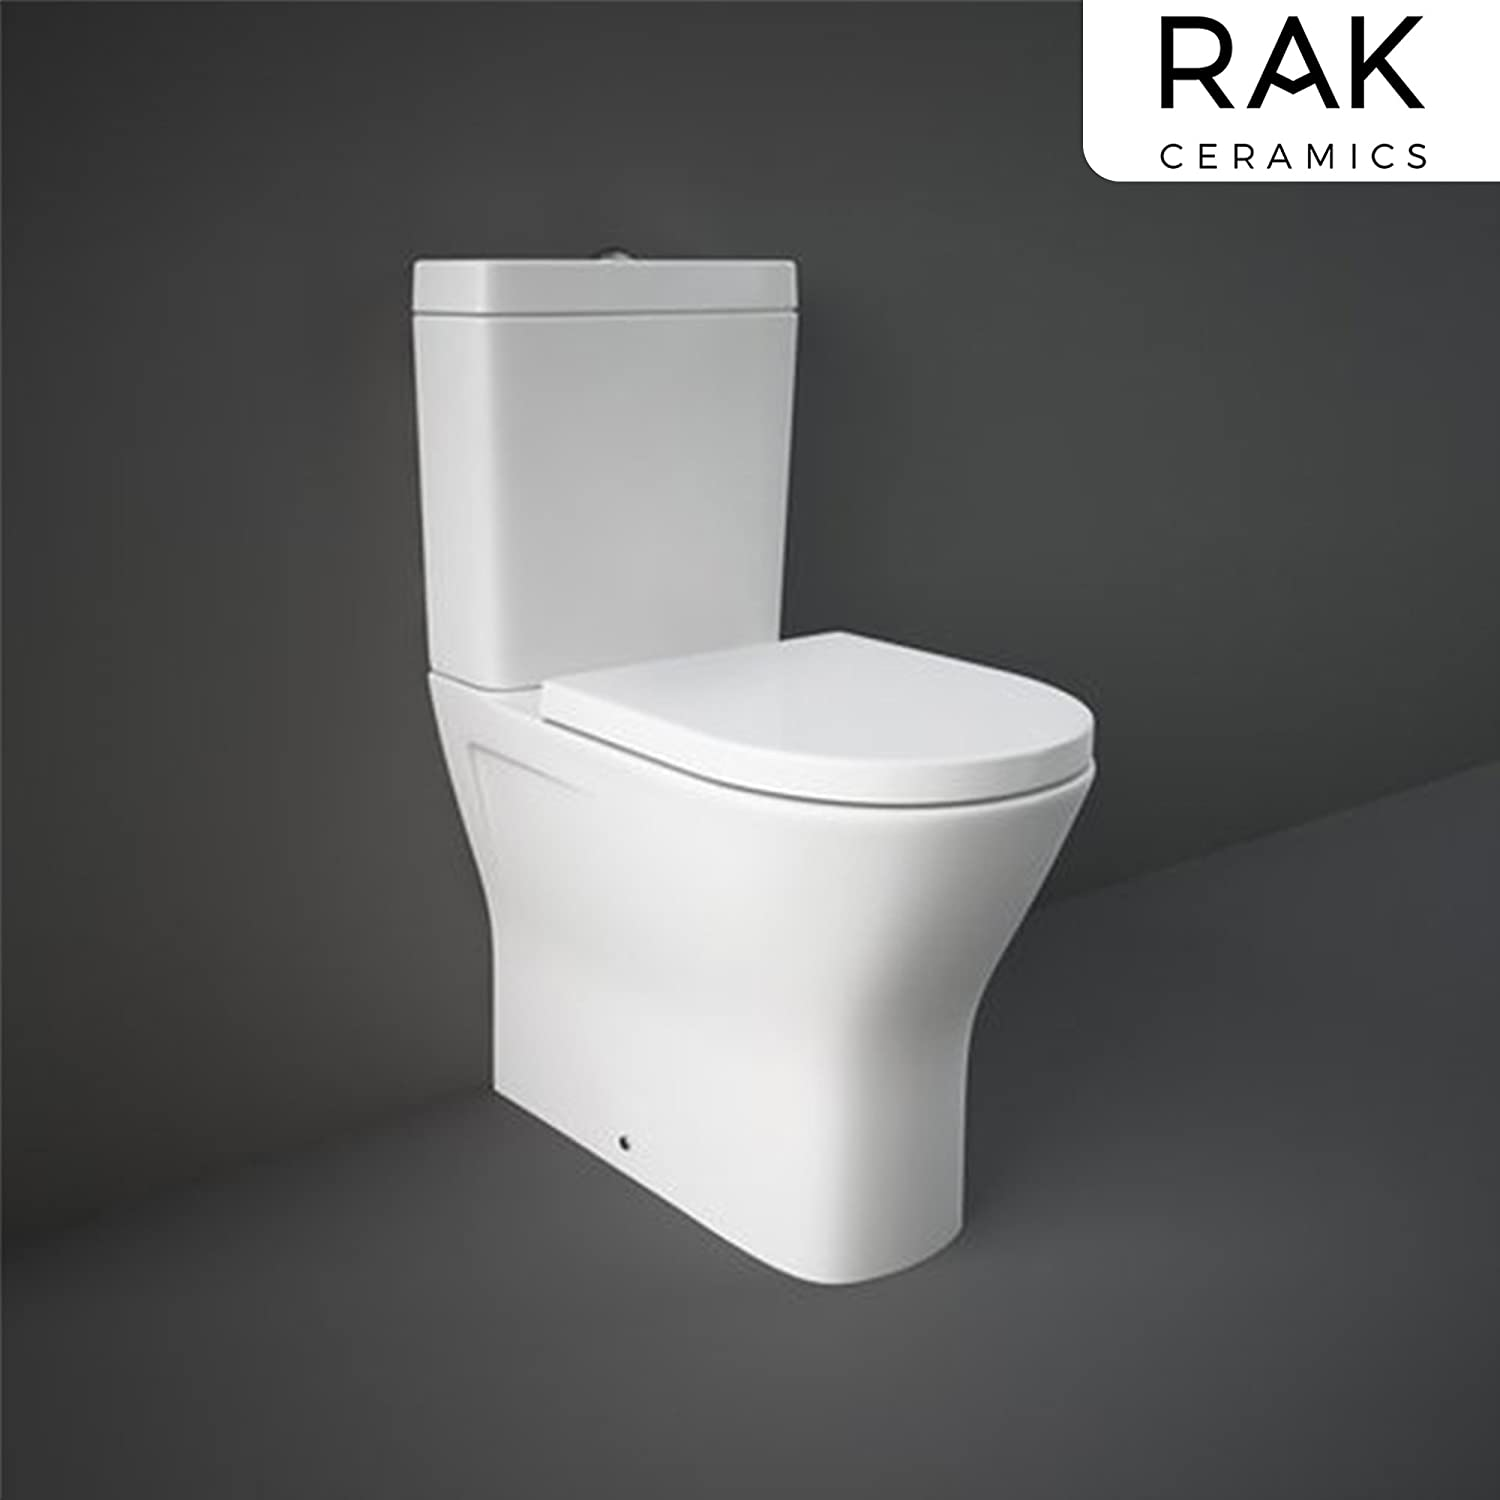 Sorrento Bathrooms Rimless Clean Flush Close Coupled Back to Wall White Ceramic Toilet Antibacterial Slim Soft Closing Seat